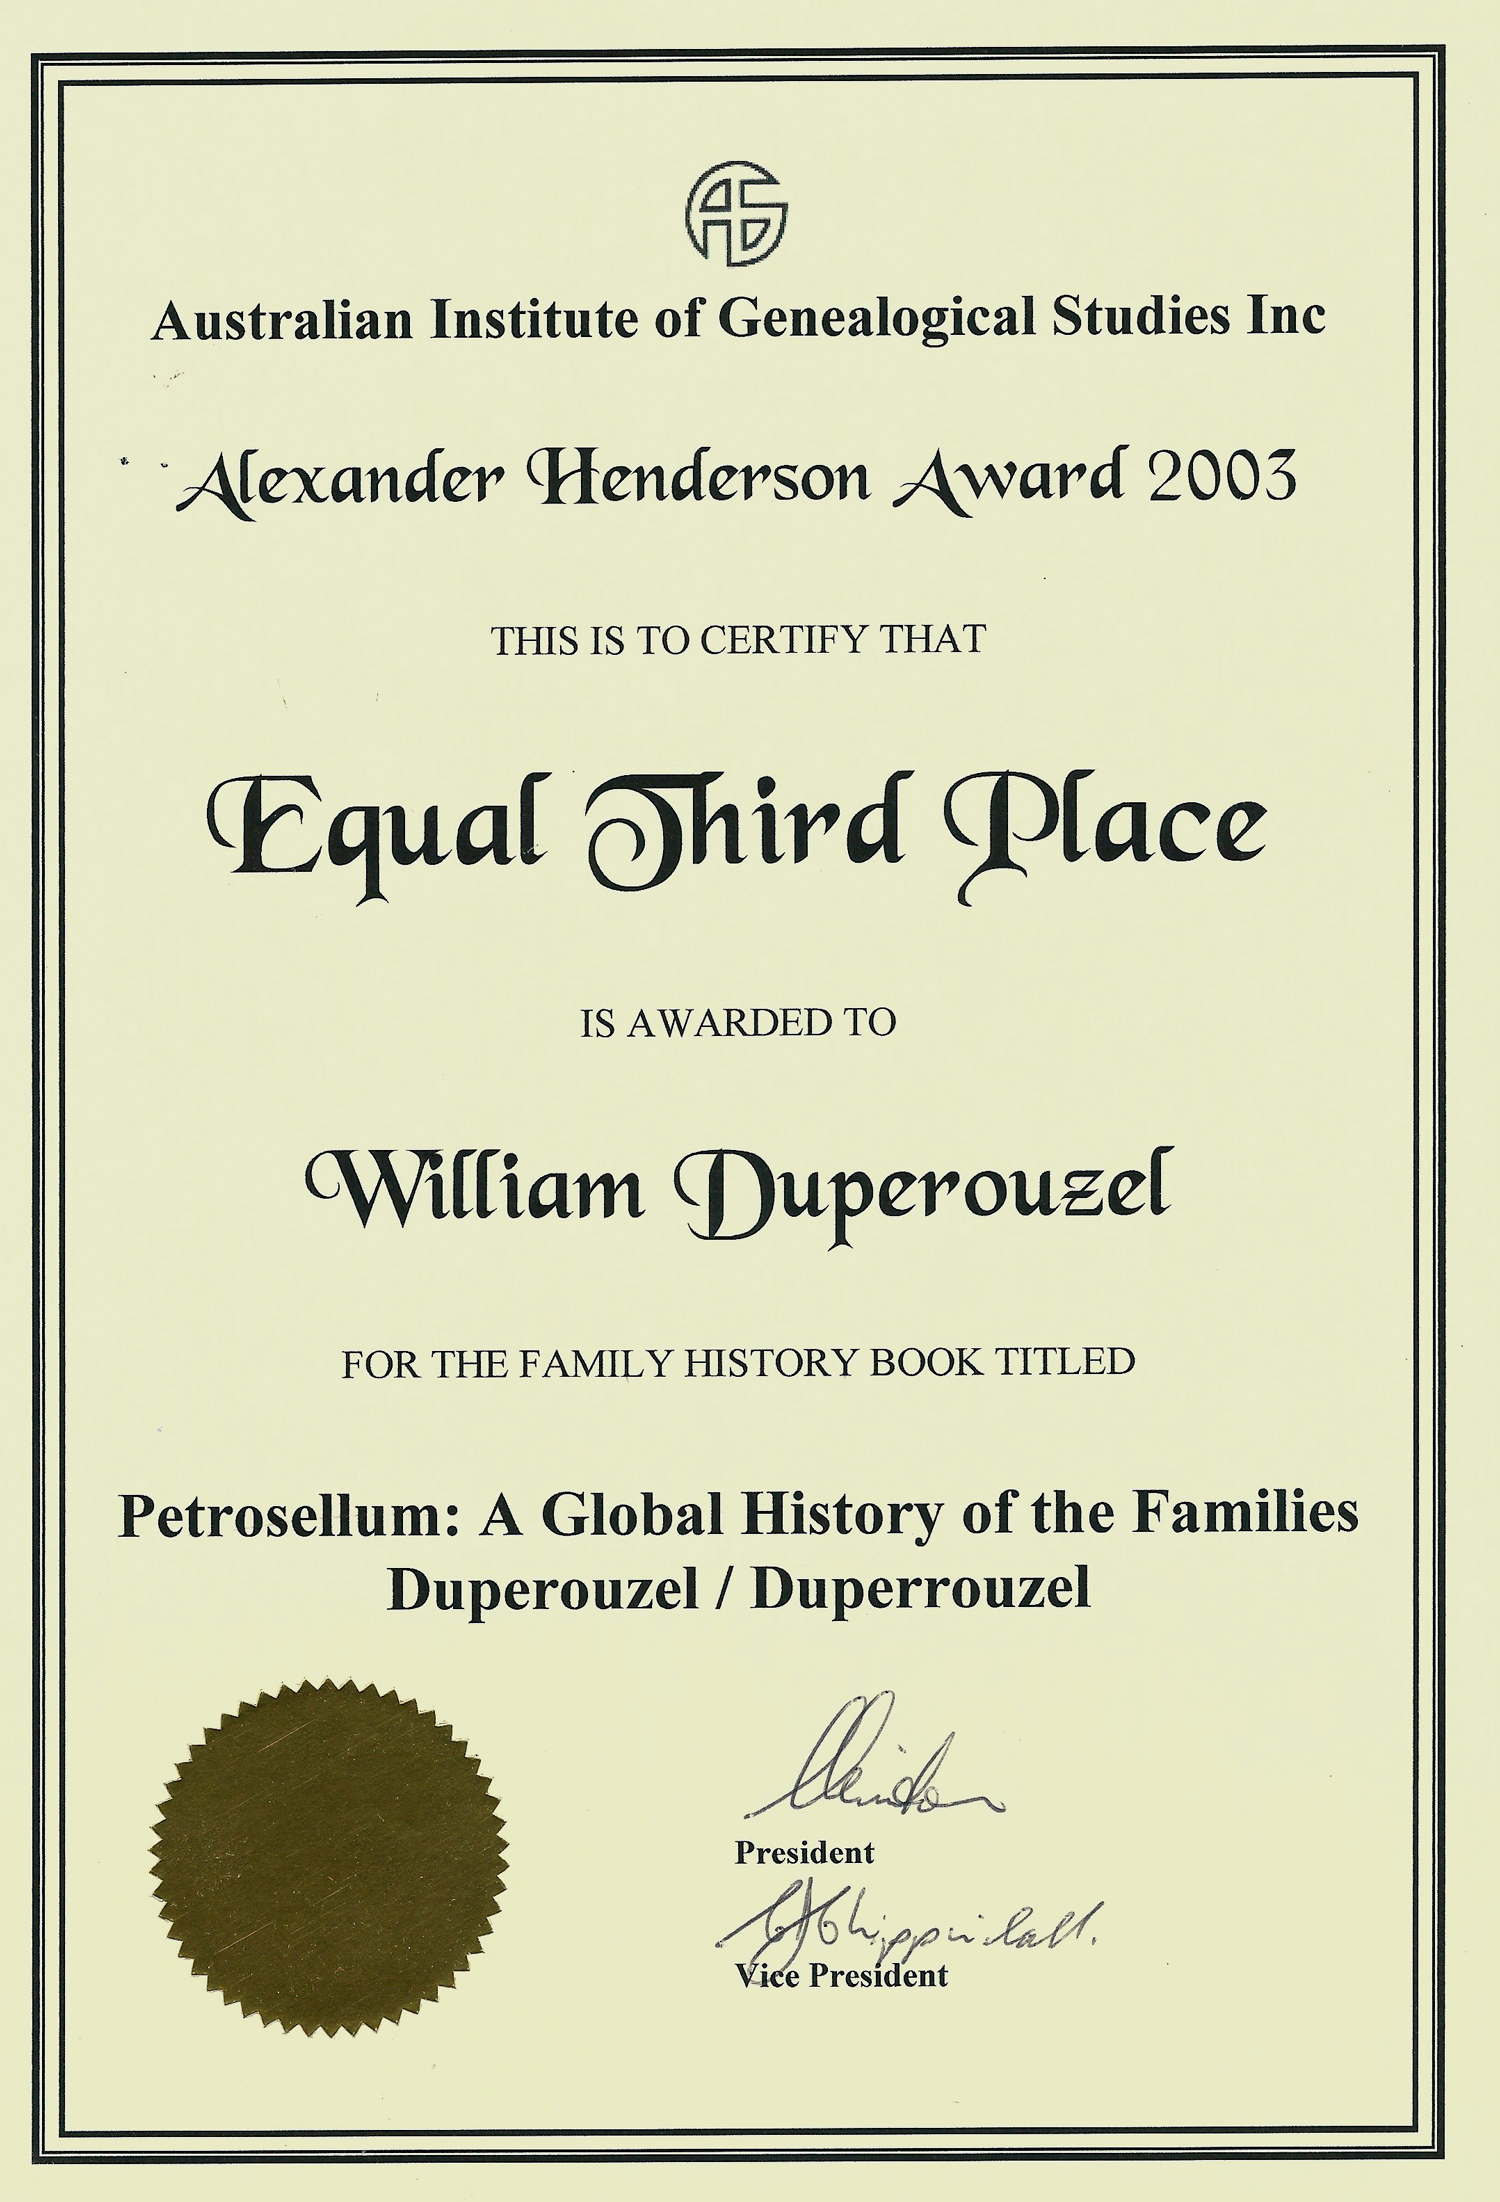 The Alexander Henderson Award